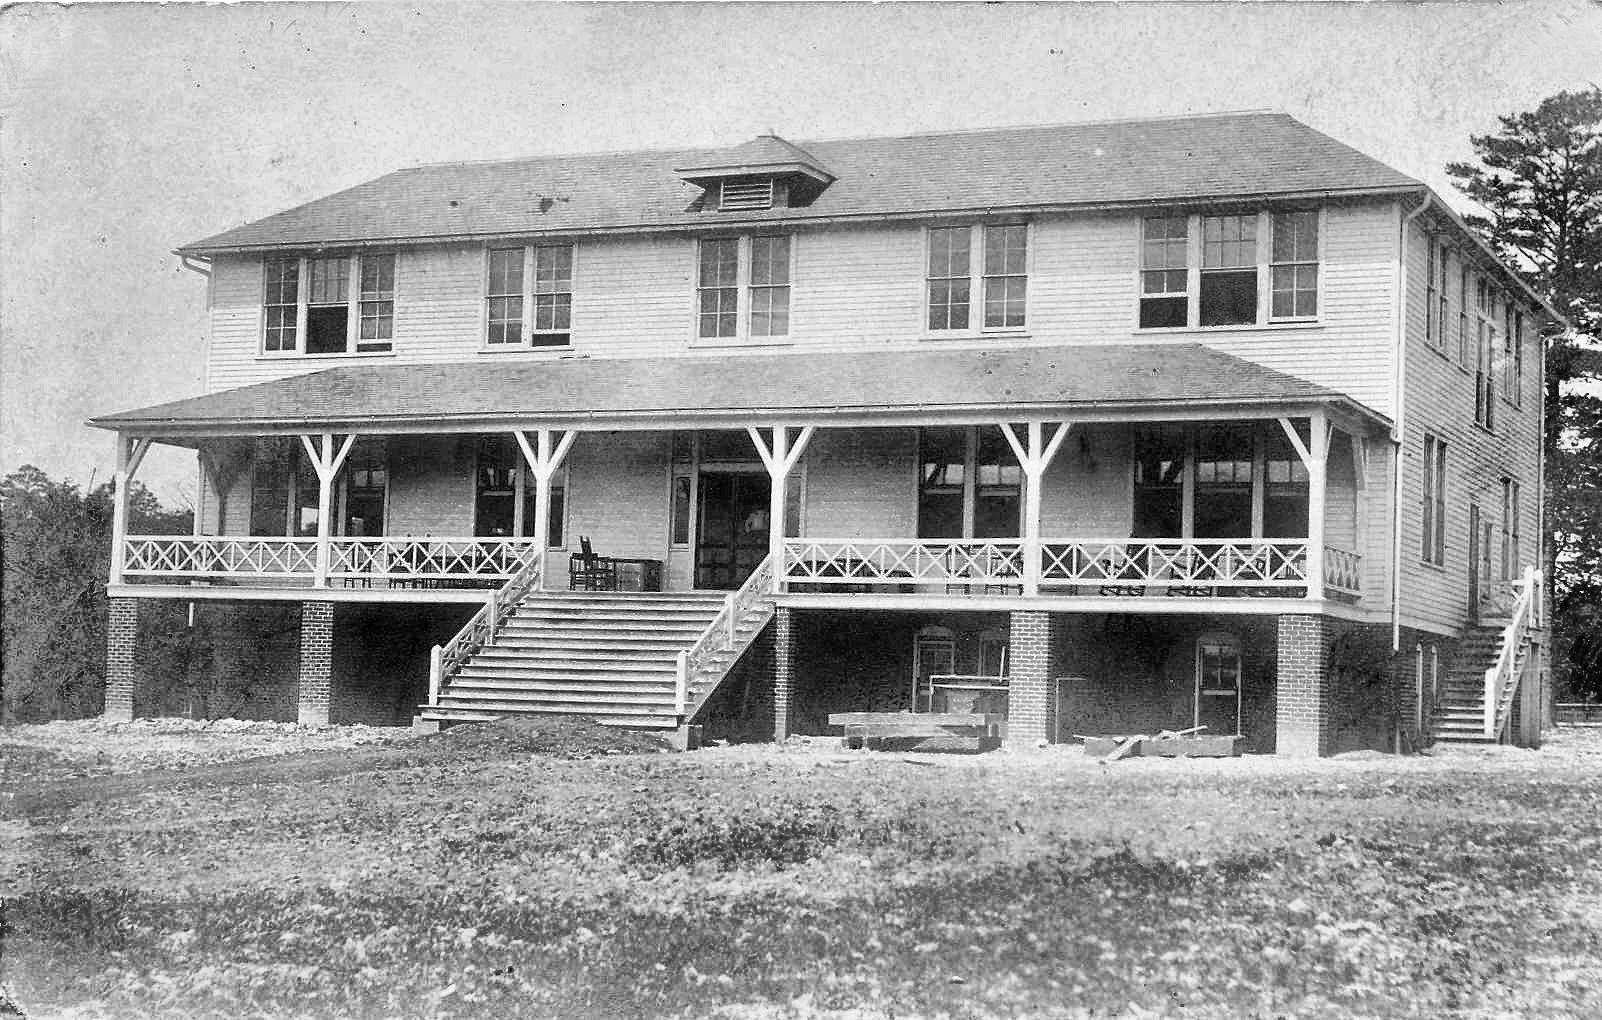 YMCA brought to Etowah 1906. built in 1910. BW